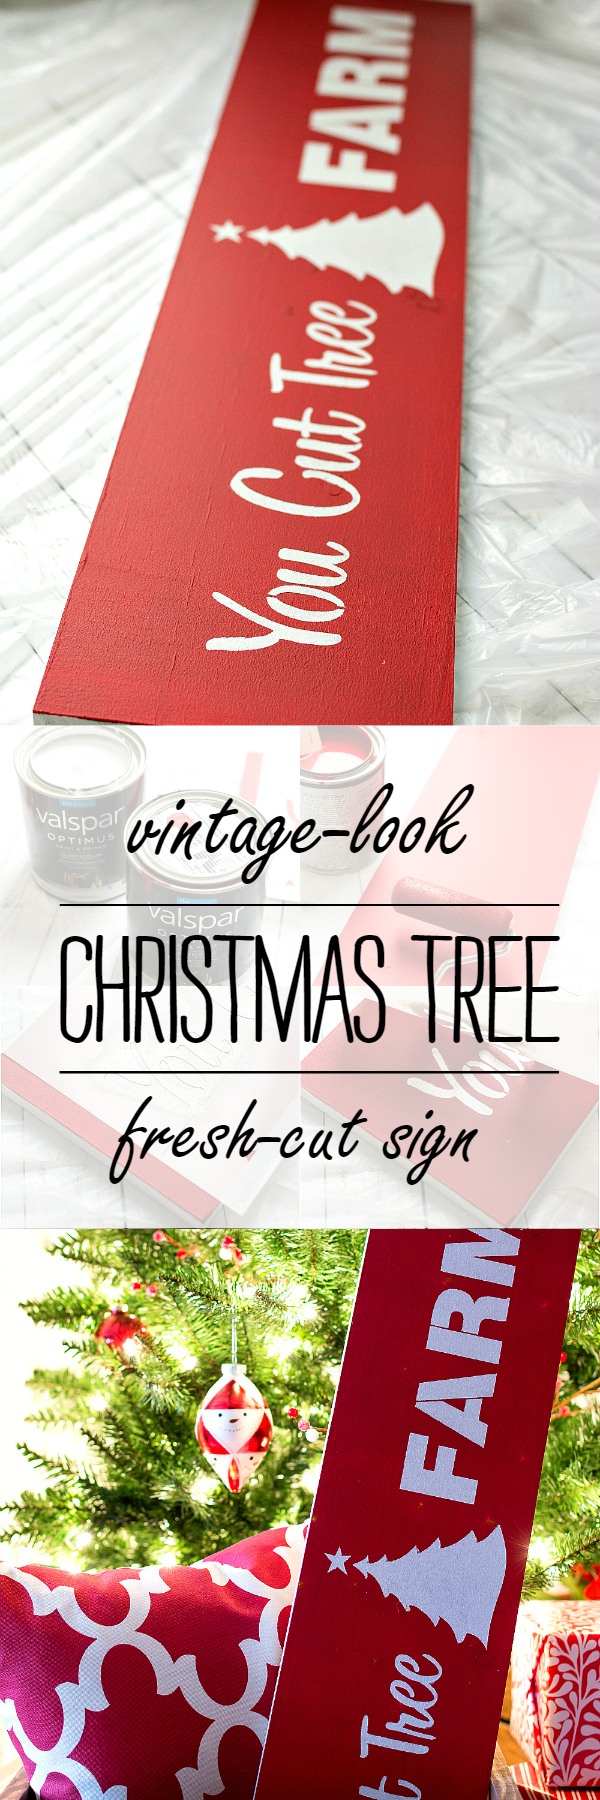 Christmas Craft Ideas: Fresh Cut Sign Stencil How To Make